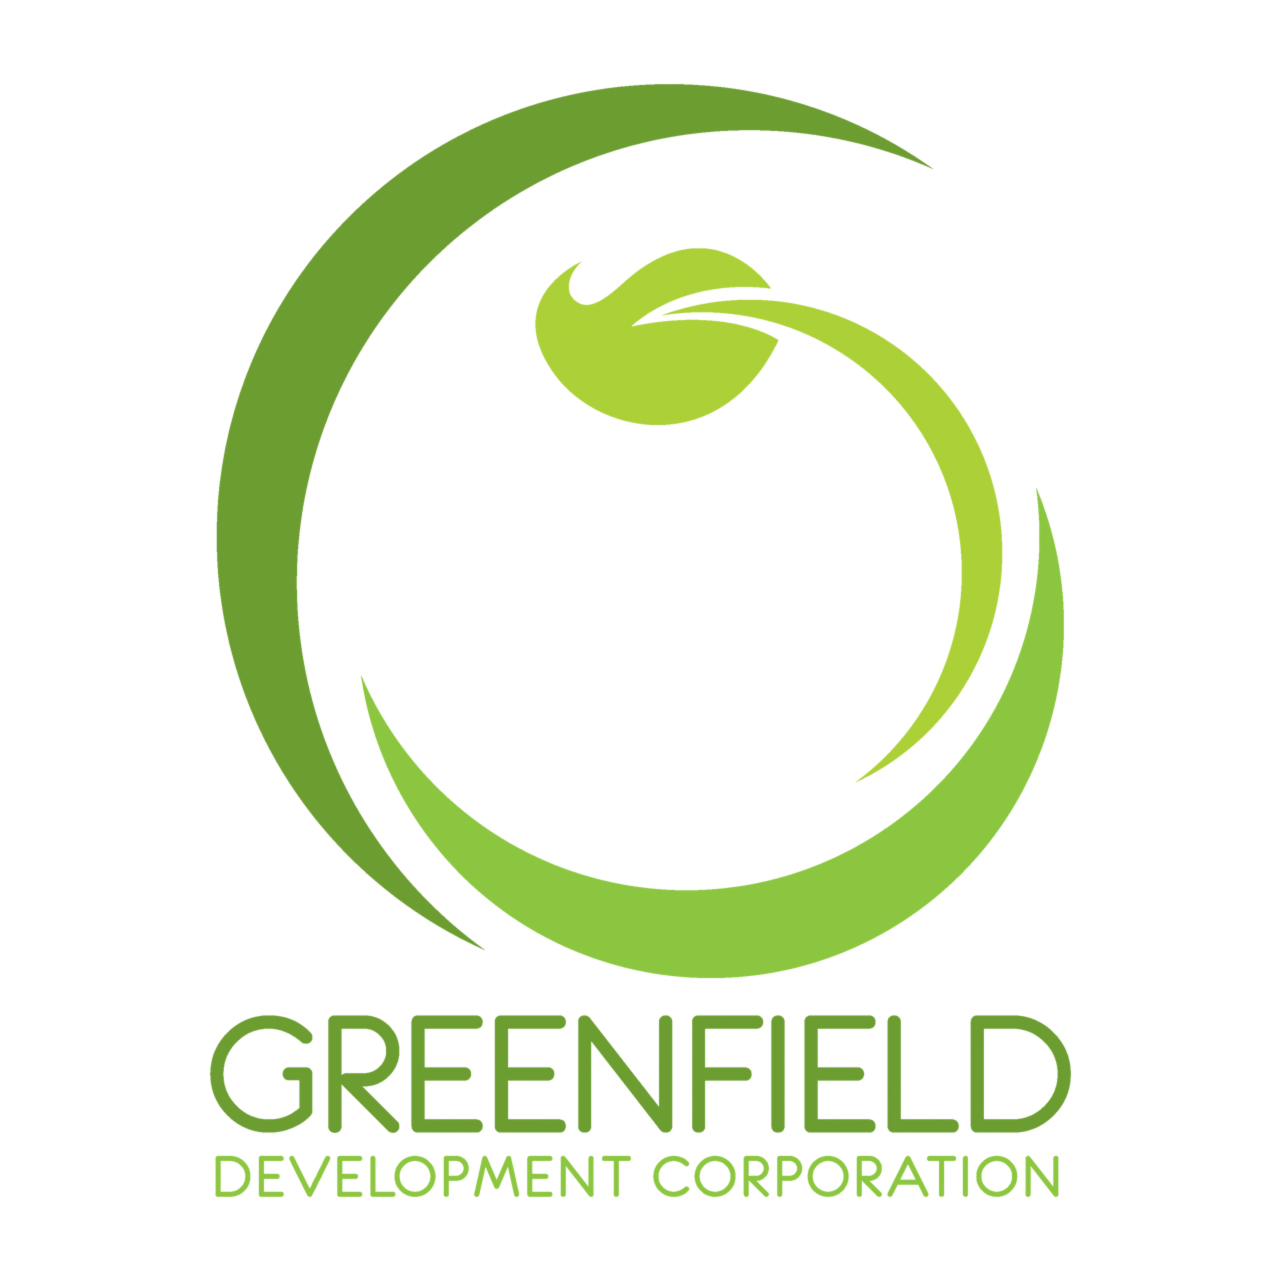 Greenfield Development Corporation